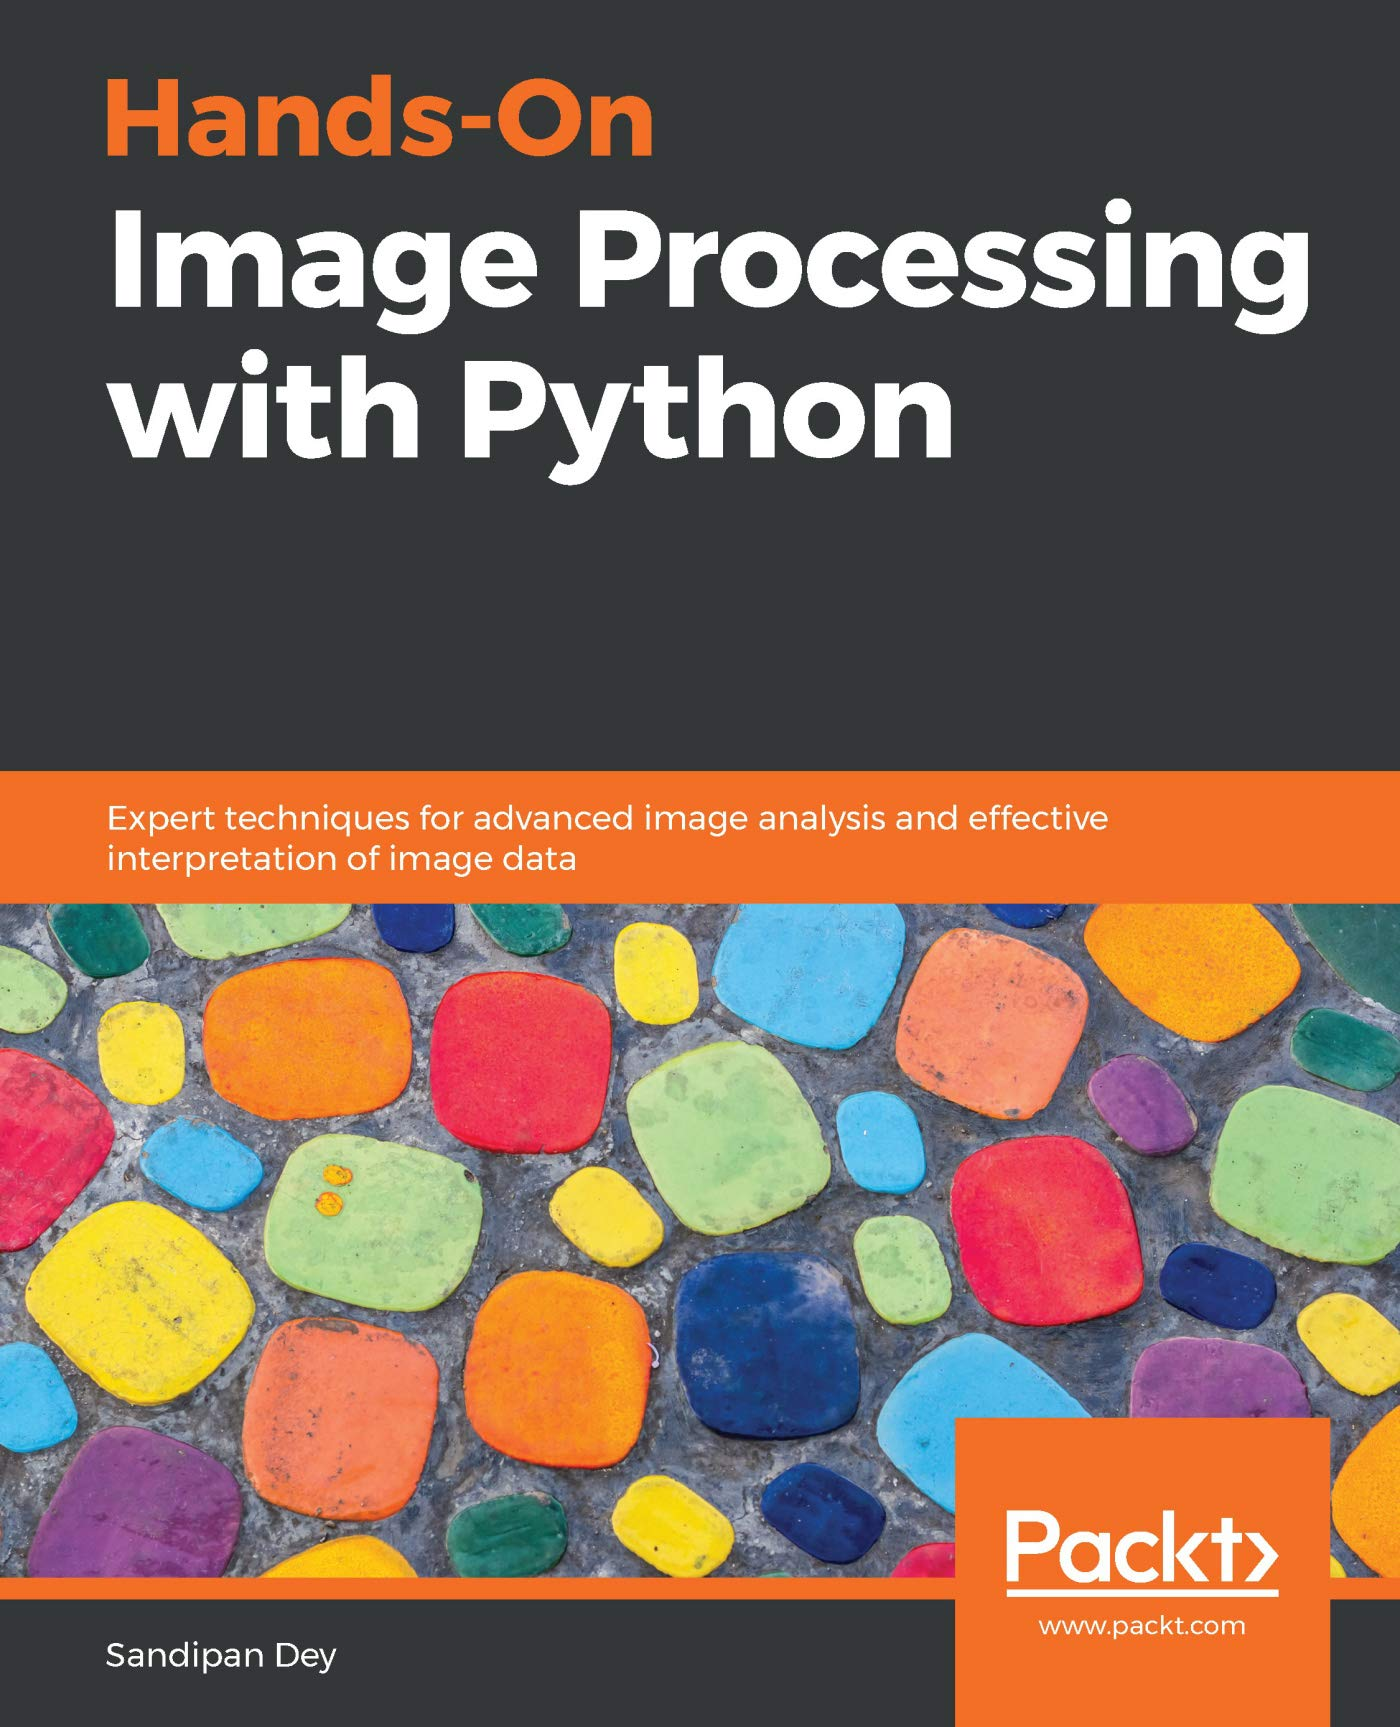 Book Cover of Hands-On Image Processing with Python - Click to open book in a new window